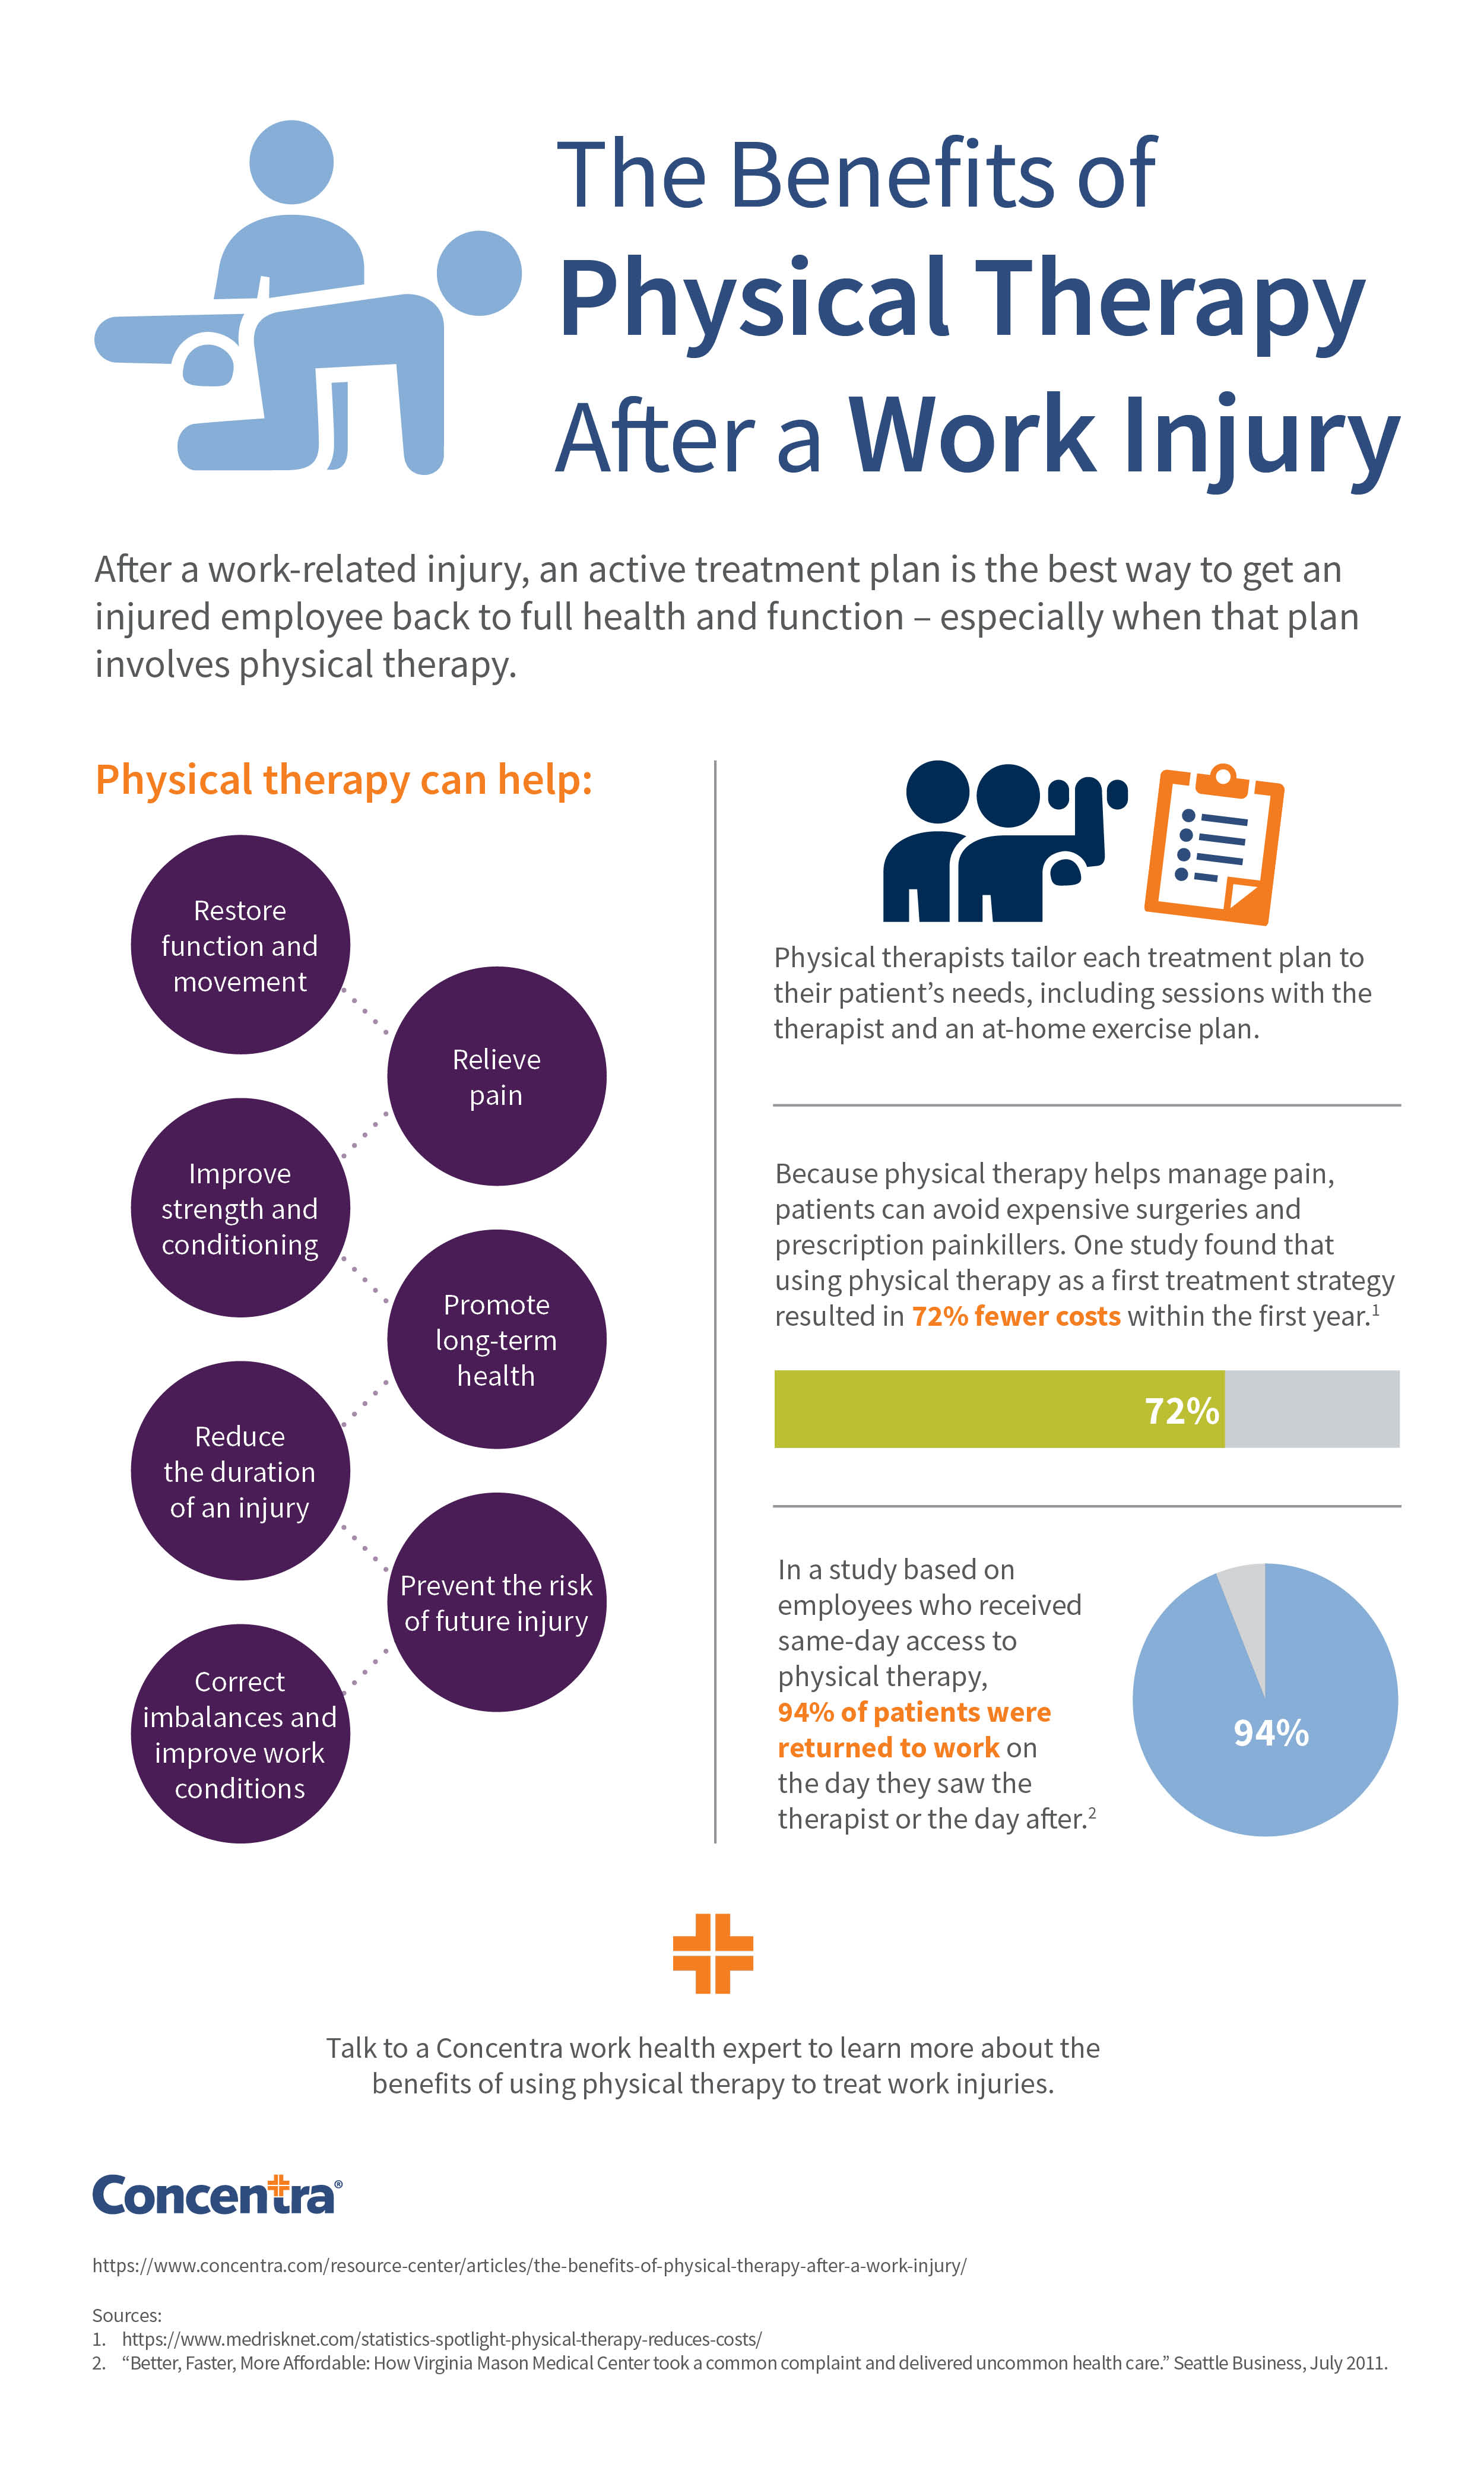 Who needs physical therapy - The Best Return To Work Plan For Injured Employees Should Involve Active Treatment Through Physical Therapy